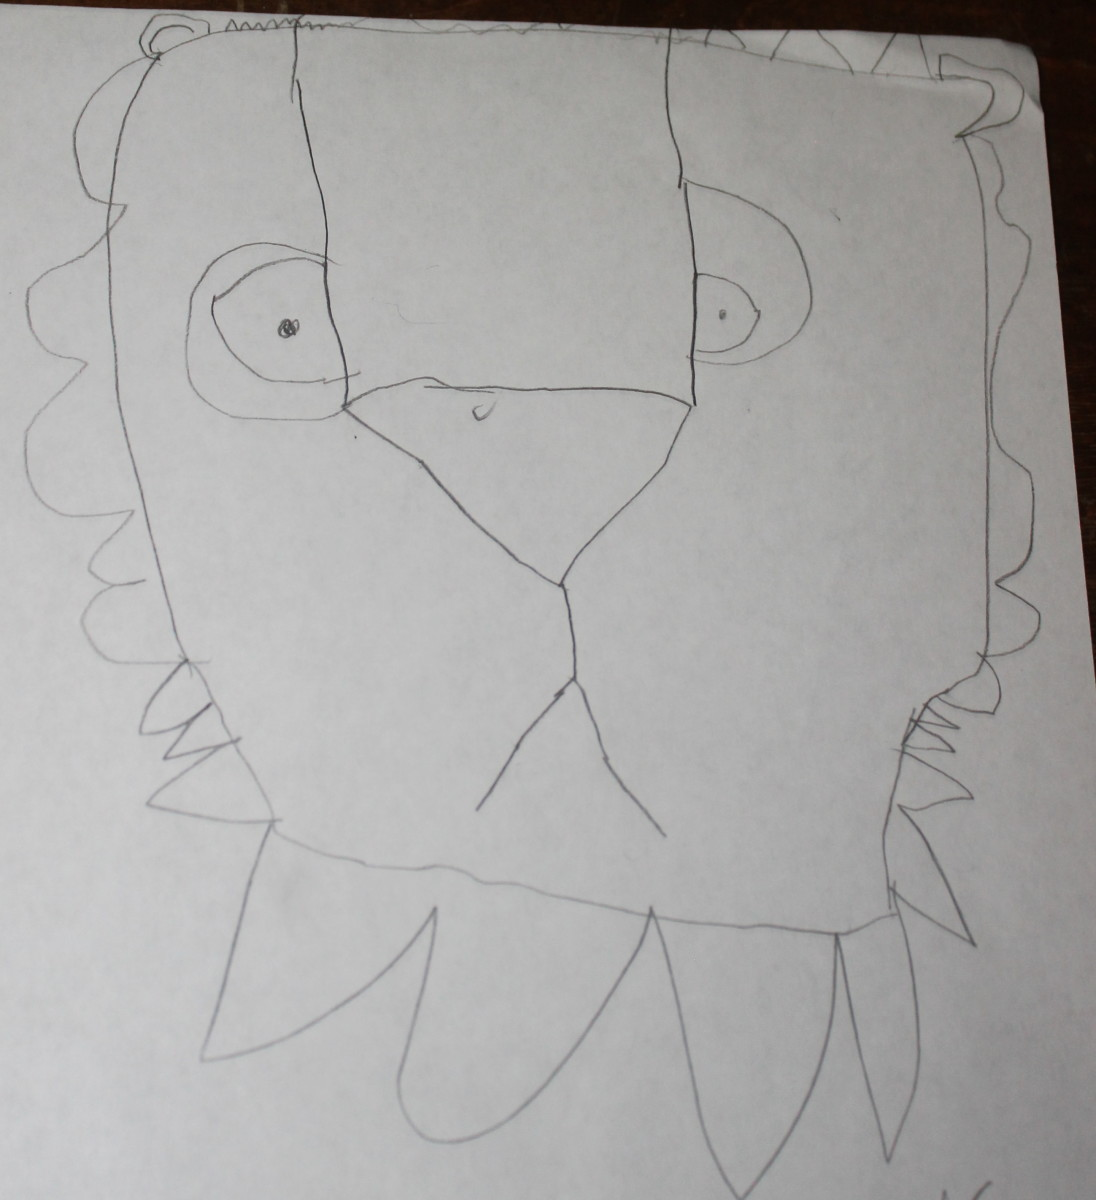 Upside Down Lion drawn by a 5 year old